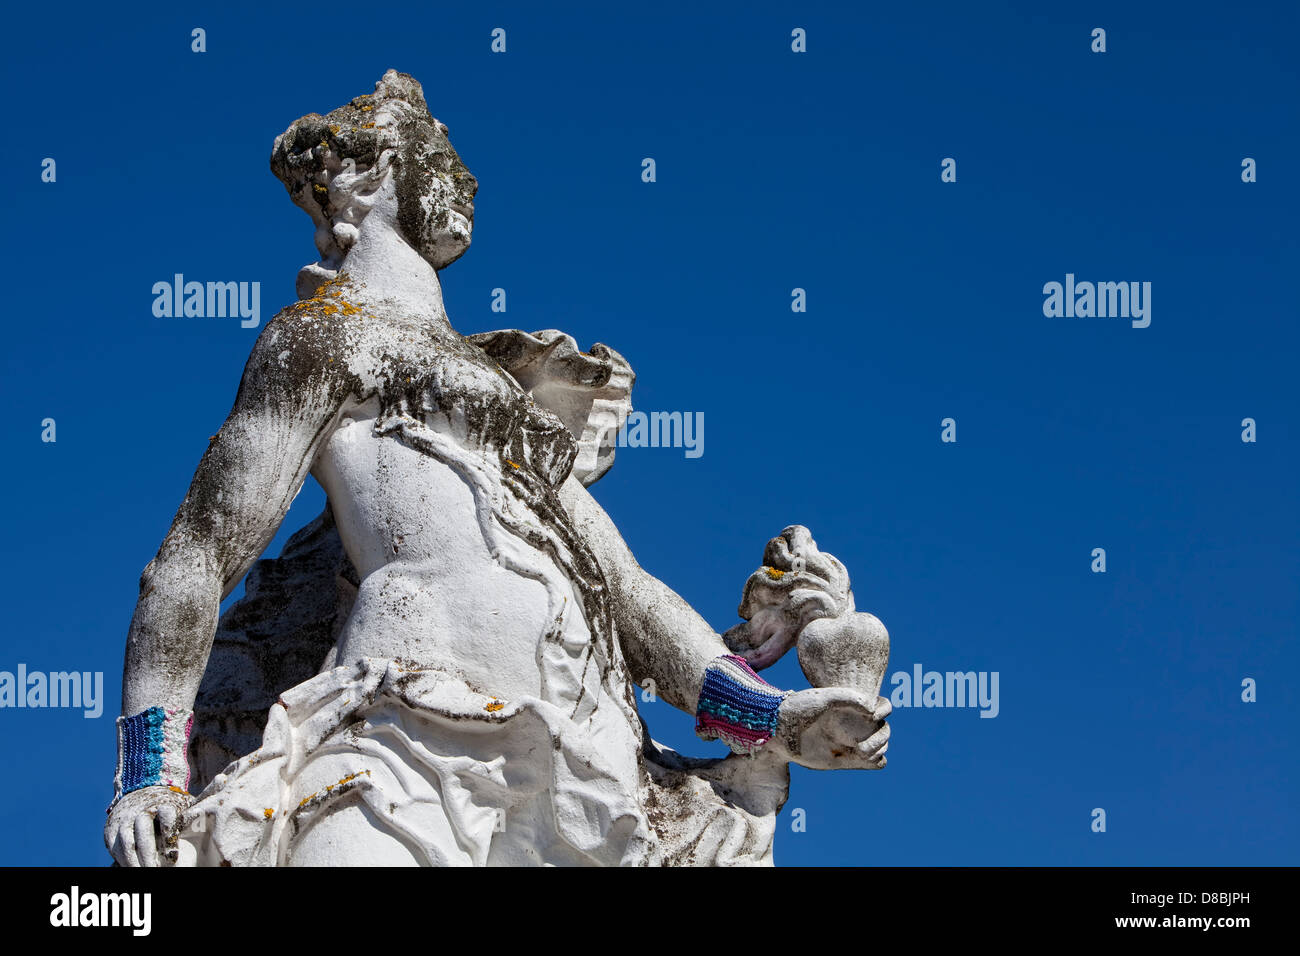 Baroque statue wearing a hand knitted wrist warmer in front of the Electoral Palace in Trier, Rhineland-Palatinate, - Stock Image